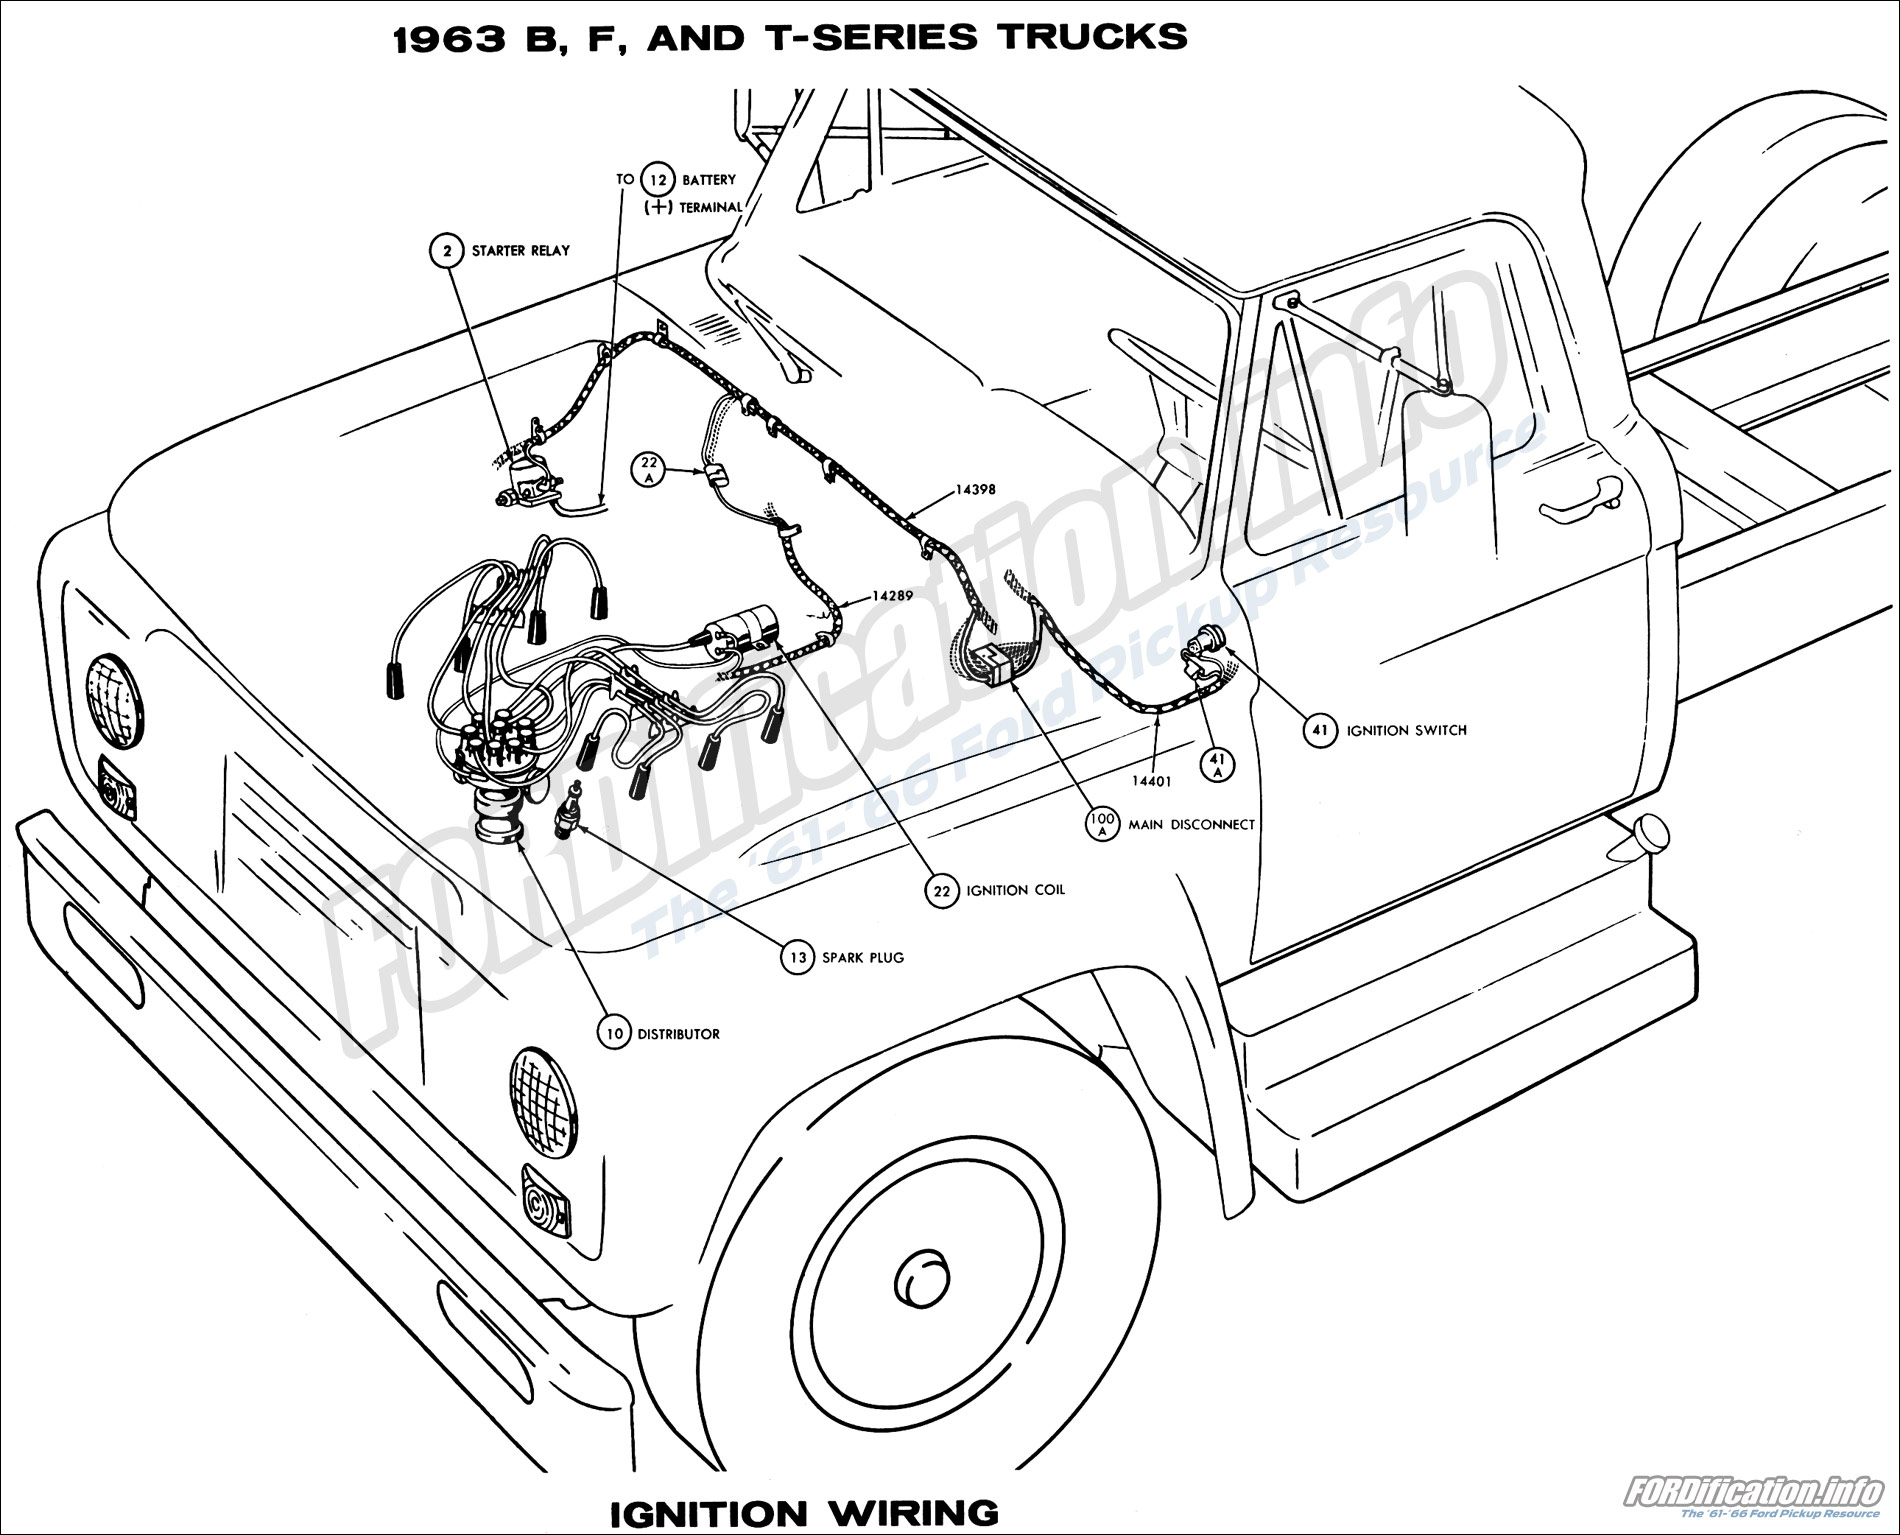 1963 Ford Truck Wiring Diagrams - FORDification.info - The '61-'66  Ford Pickup Wiring Diagram on 55 chevy wiring diagram, 33 ford wiring diagram, 31 ford wiring diagram, 41 chevy wiring diagram, 78 trans am wiring diagram, 41 plymouth wiring diagram, 71 maverick wiring diagram, 40 ford wiring diagram, 68 camaro wiring diagram,